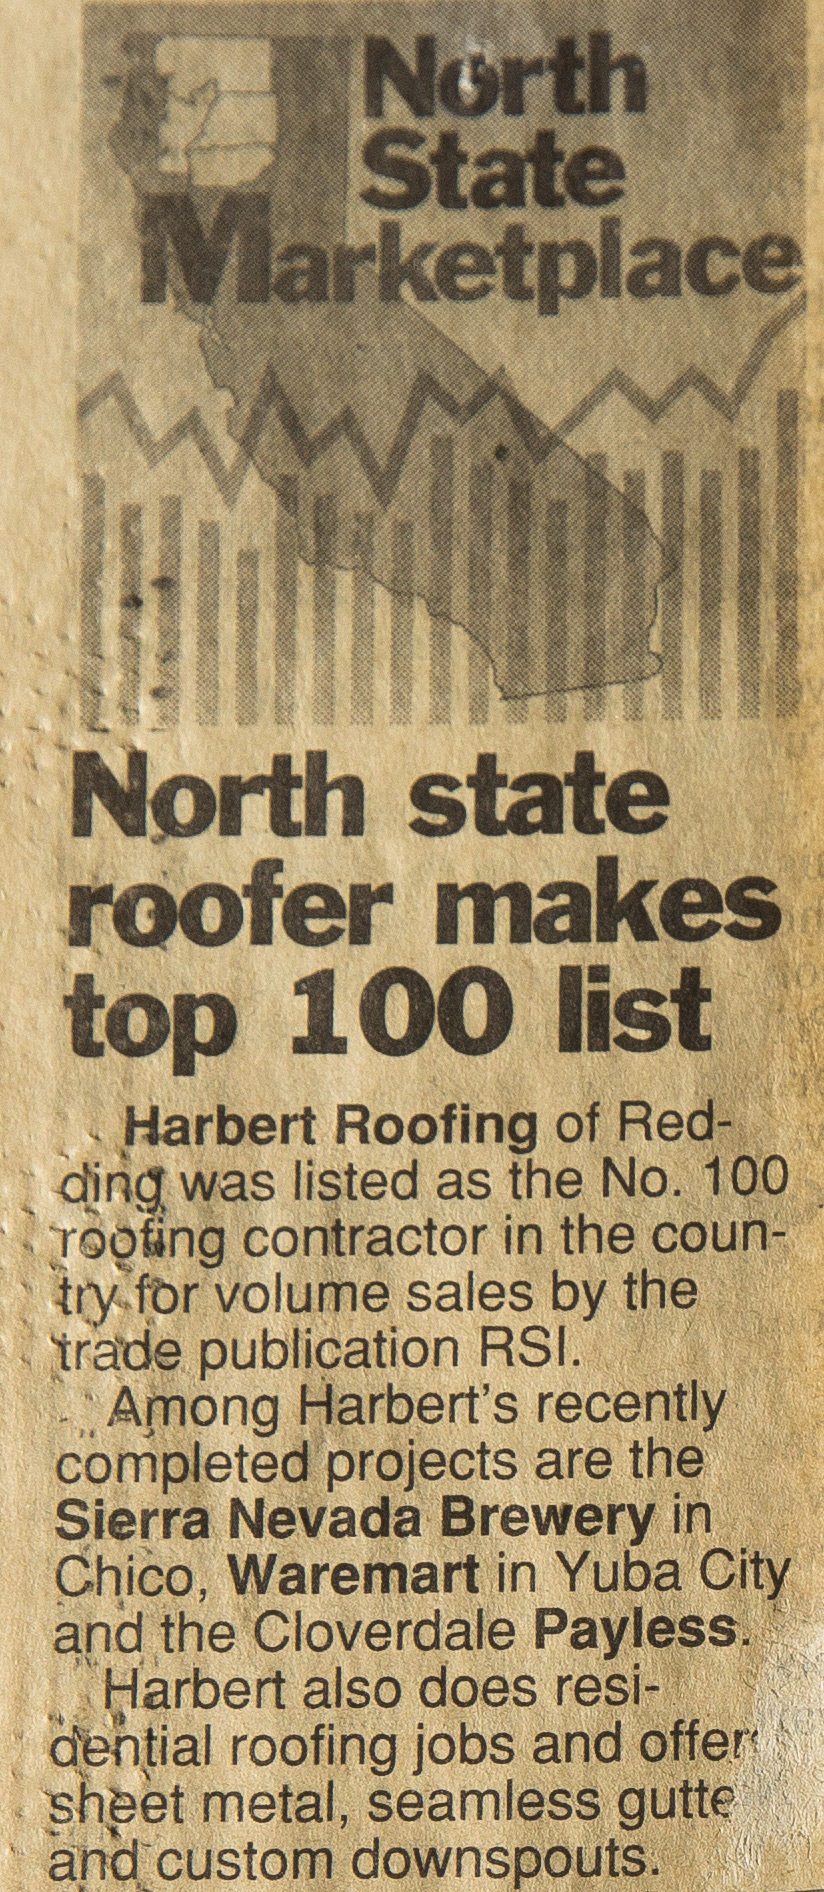 Harbert Roofing of Redding was listed as the No. 100 roofing contractor in the country for volume sales by the trade publication RSI.  - Among Harbert's recently completed projects are the Sierra Nevada Brewery in Chico, Waremart in Yuba City and the Cloverdale Payless.Harbert also does residential roofing jobs and offers sheet metal, seamless gutters and custom downspouts.